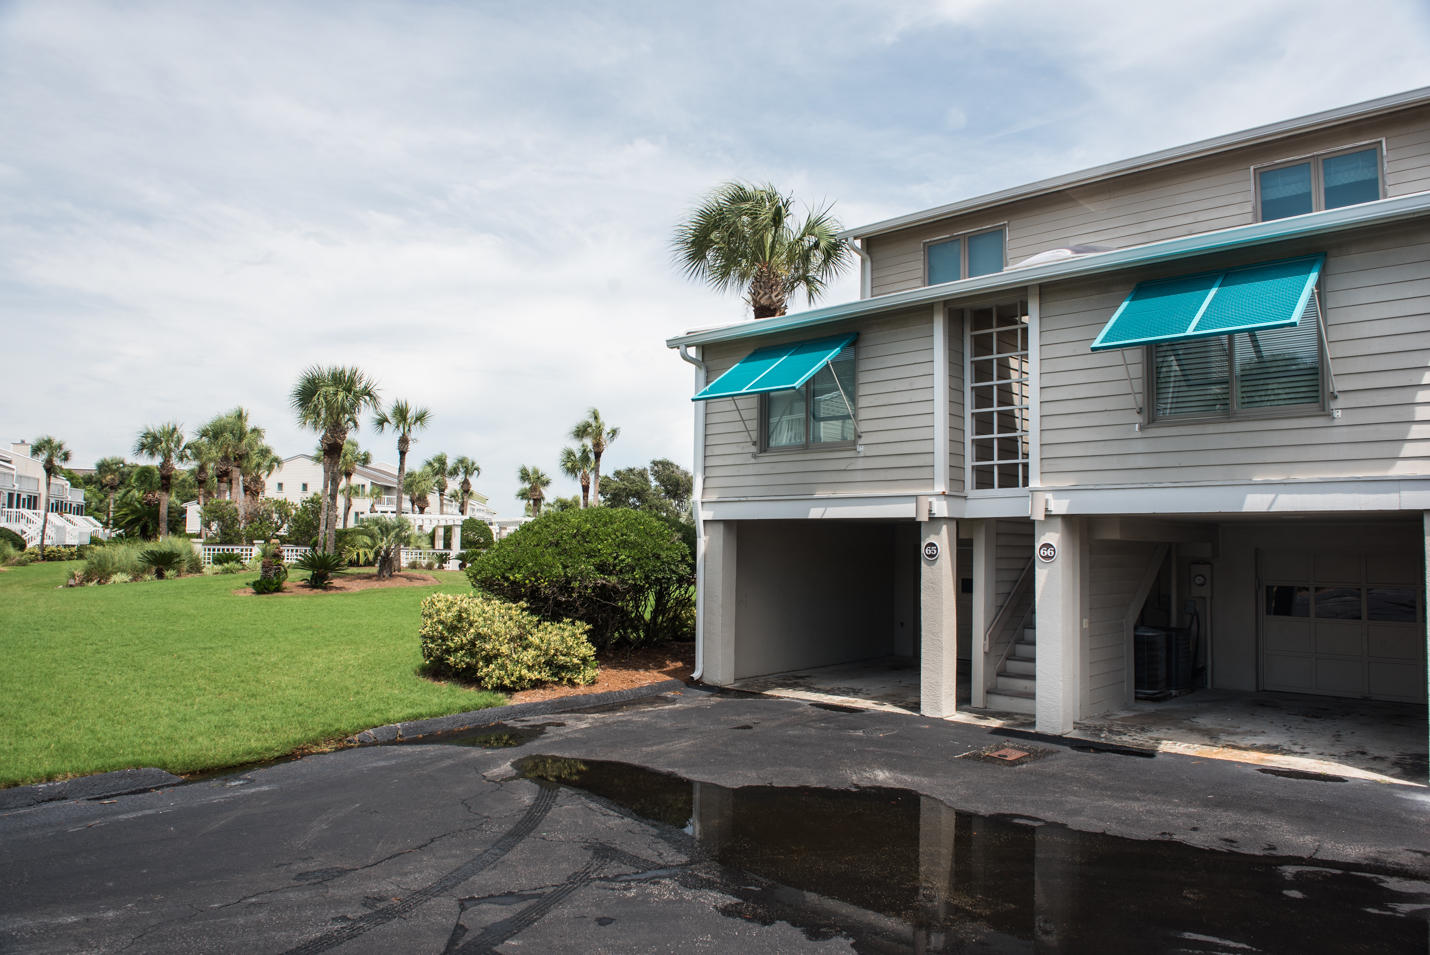 Beach Club Villas Homes For Sale - 66 Beach Club Villas, Isle of Palms, SC - 0